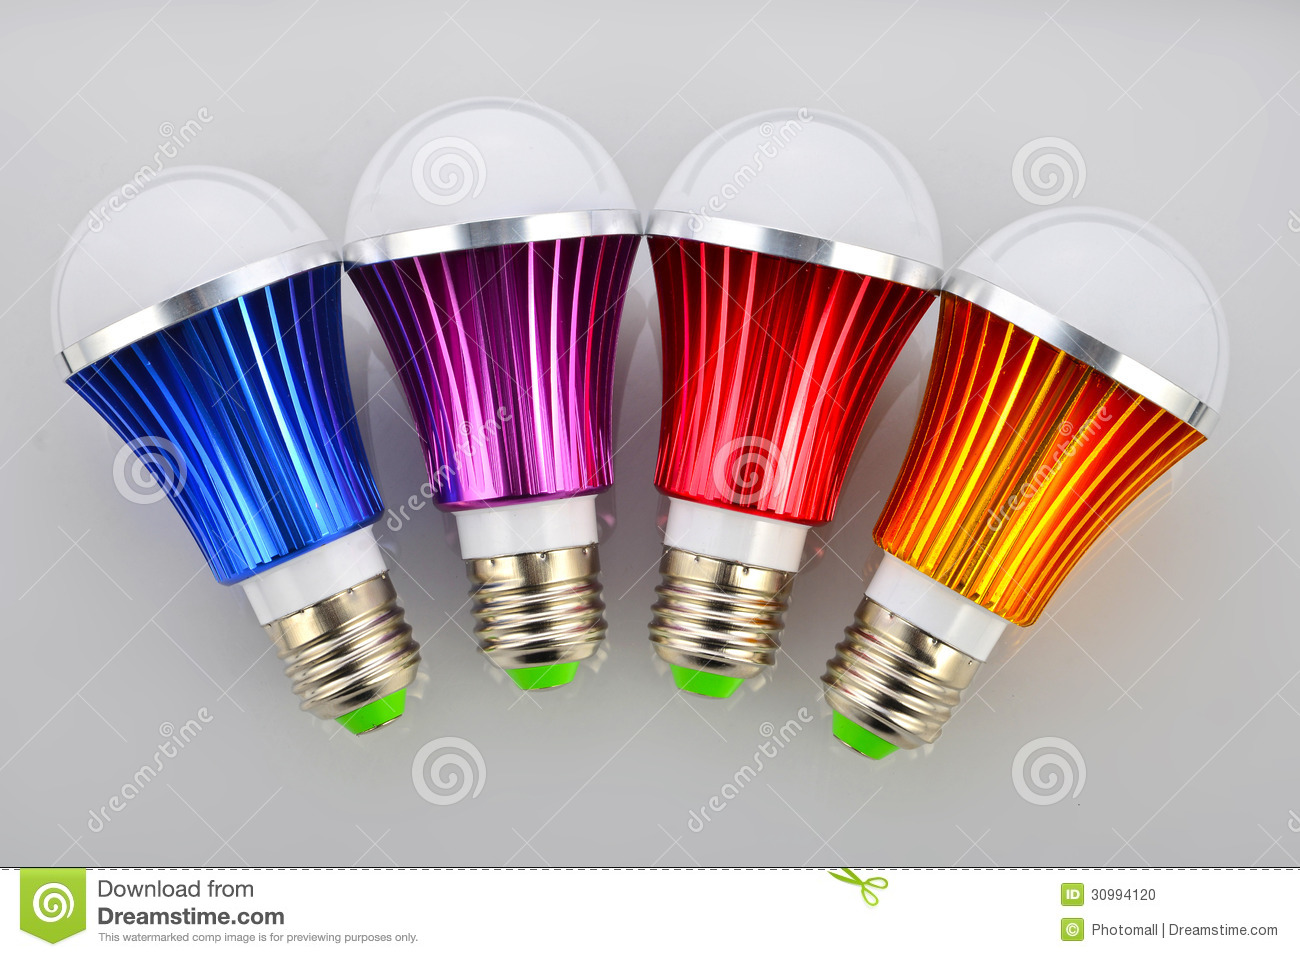 Download Colorful LED Light Bulbs,Led Lamp Bulb Green Light Source Green  Lighting Energy Saving